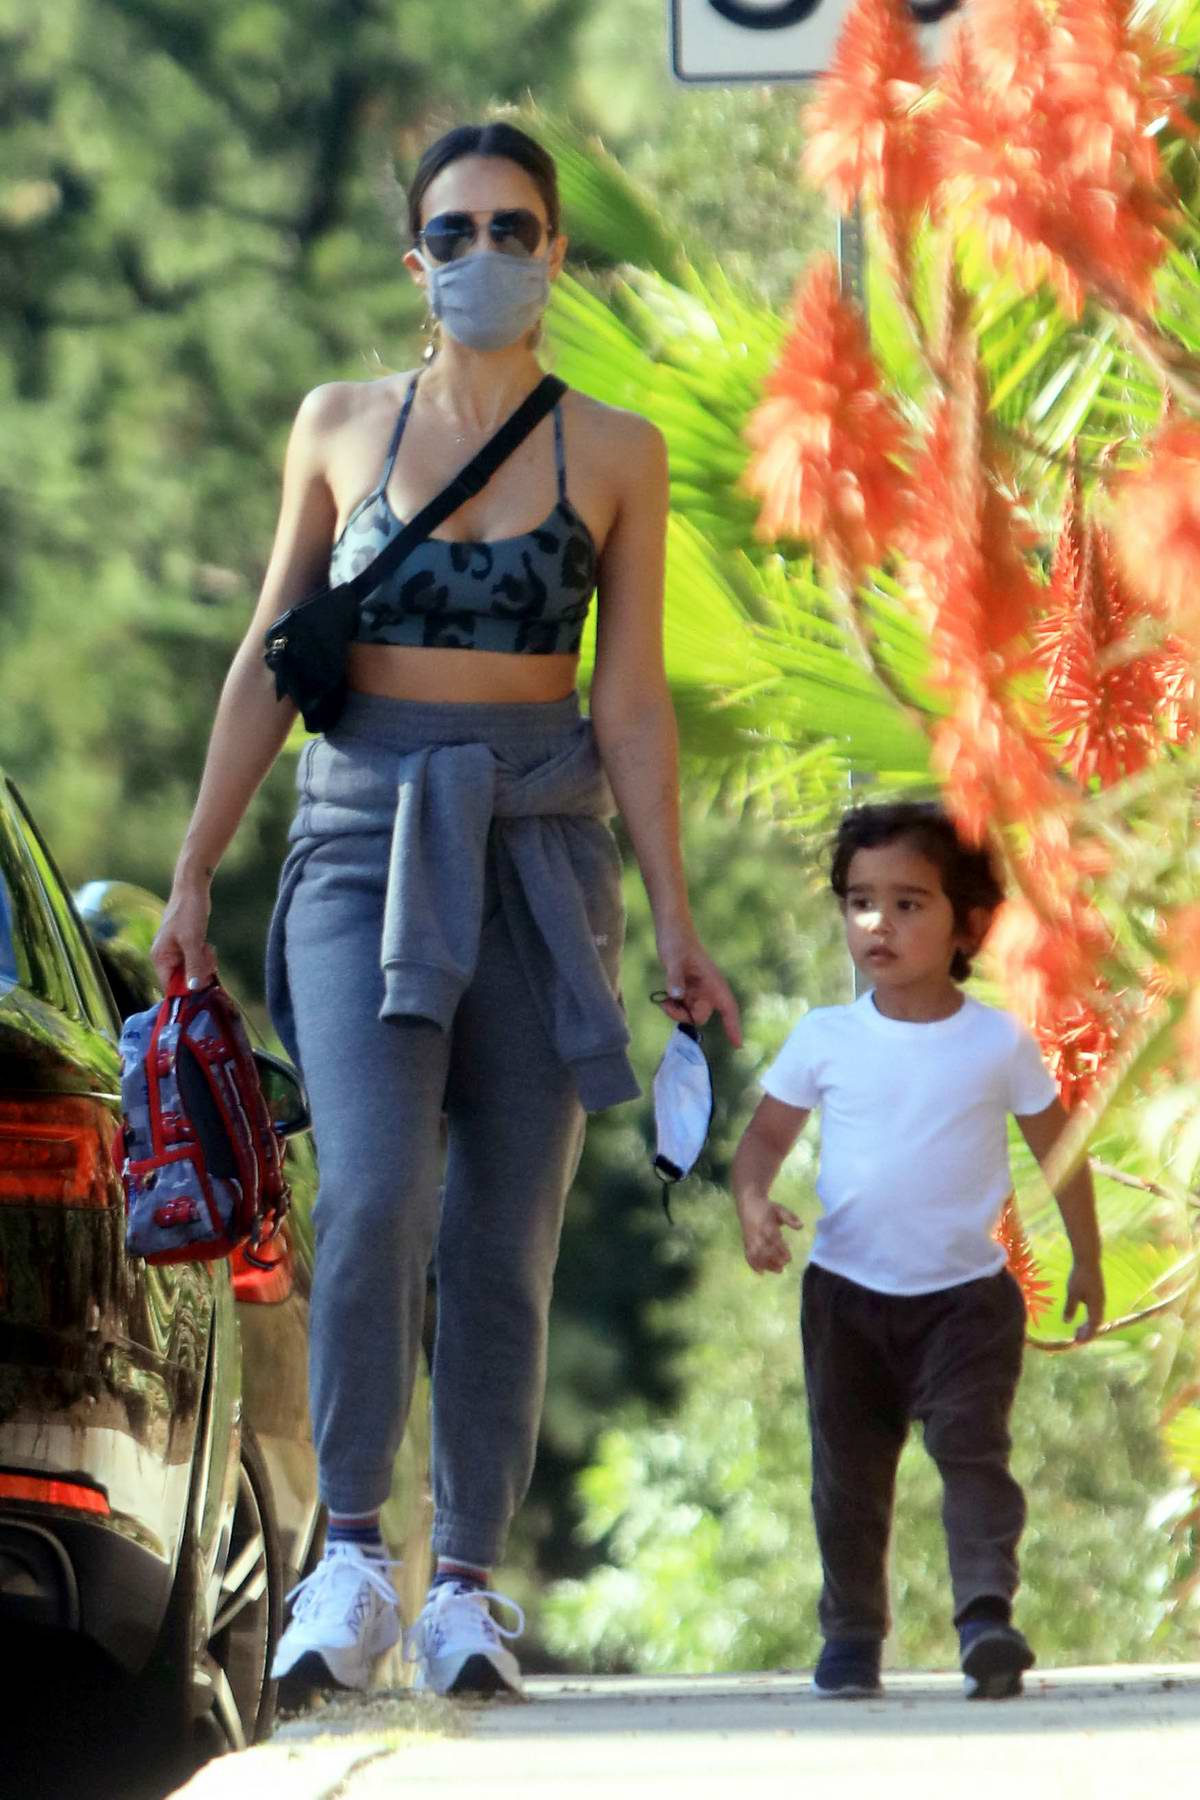 Jessica Alba shows off her toned figure in sports bra and sweatpants while strolling with her kids in Los Angeles